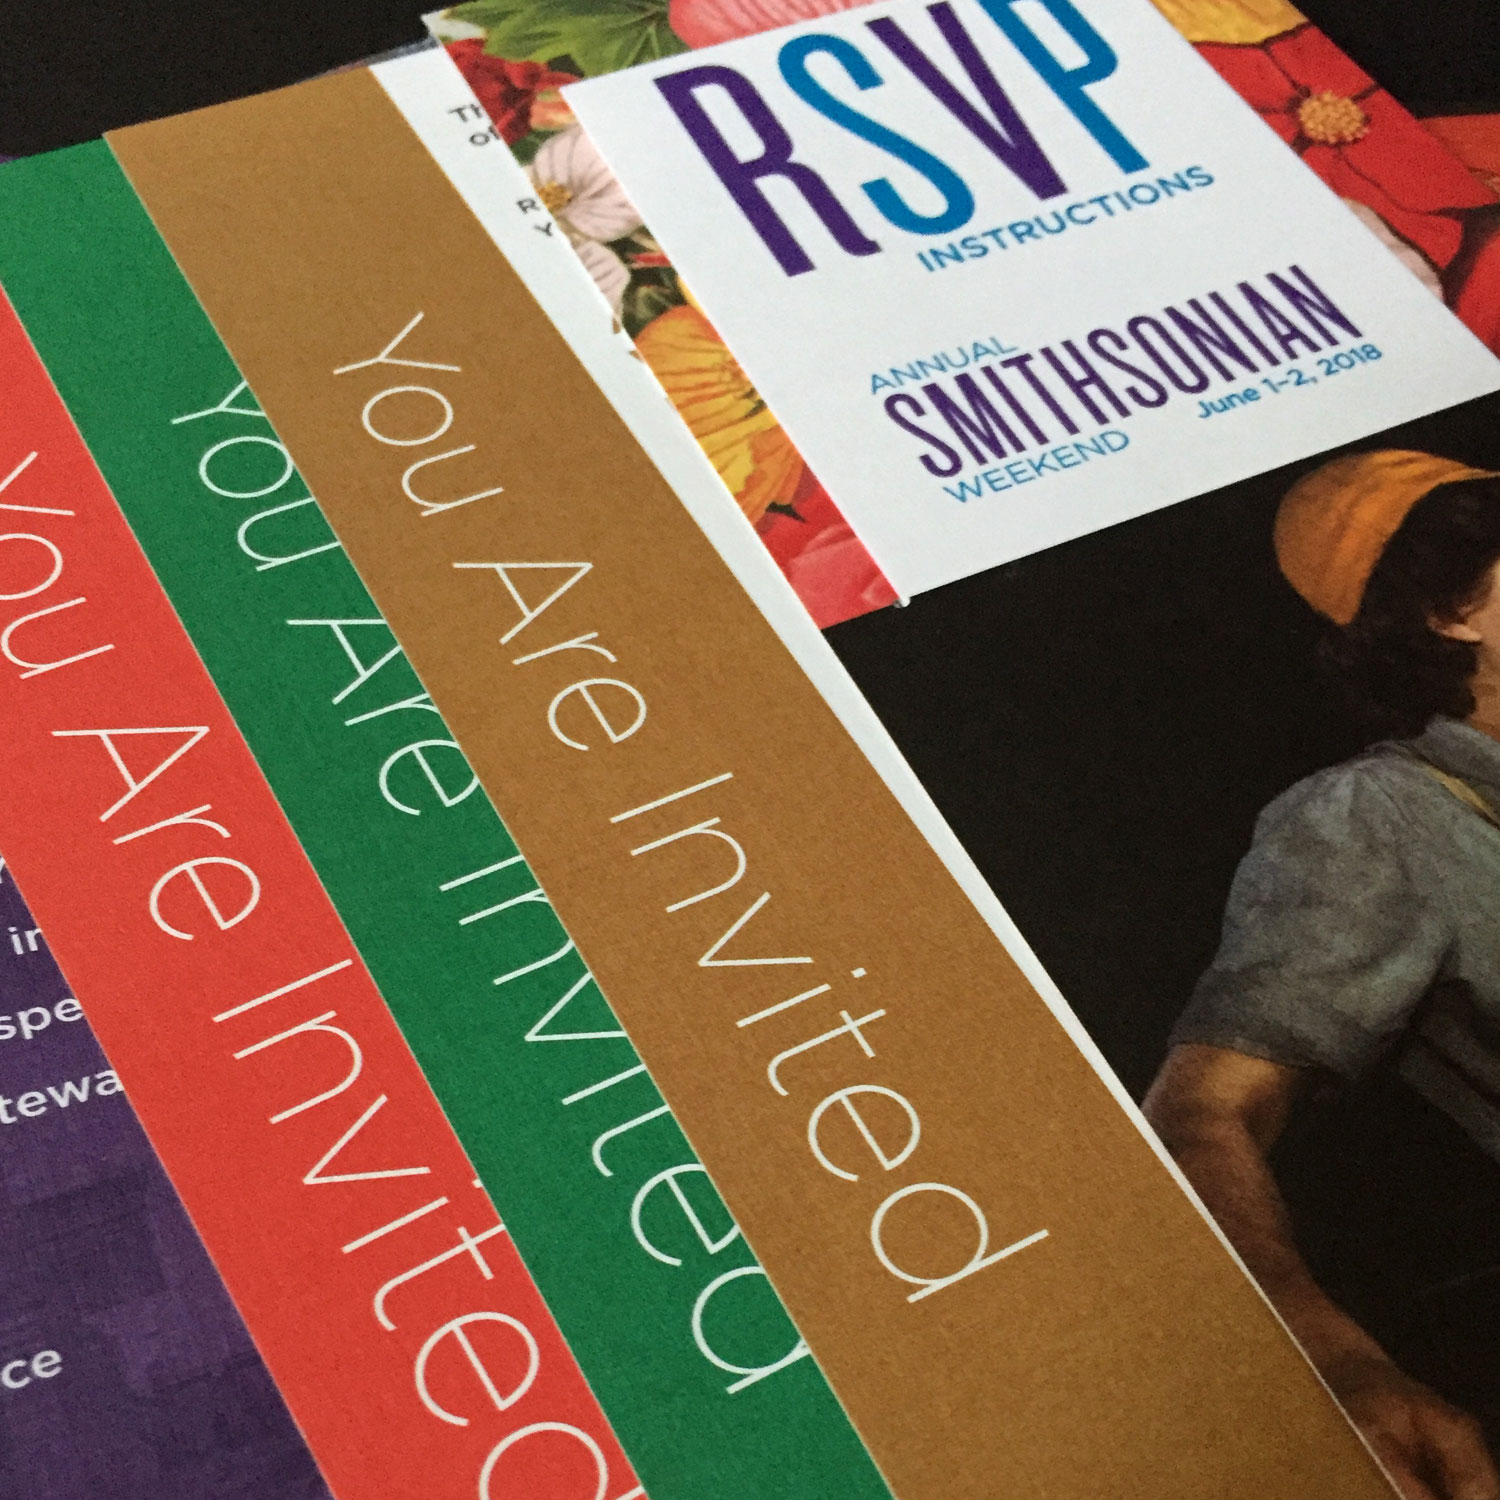 Annual Smithsonian Weekend  – Event Materials